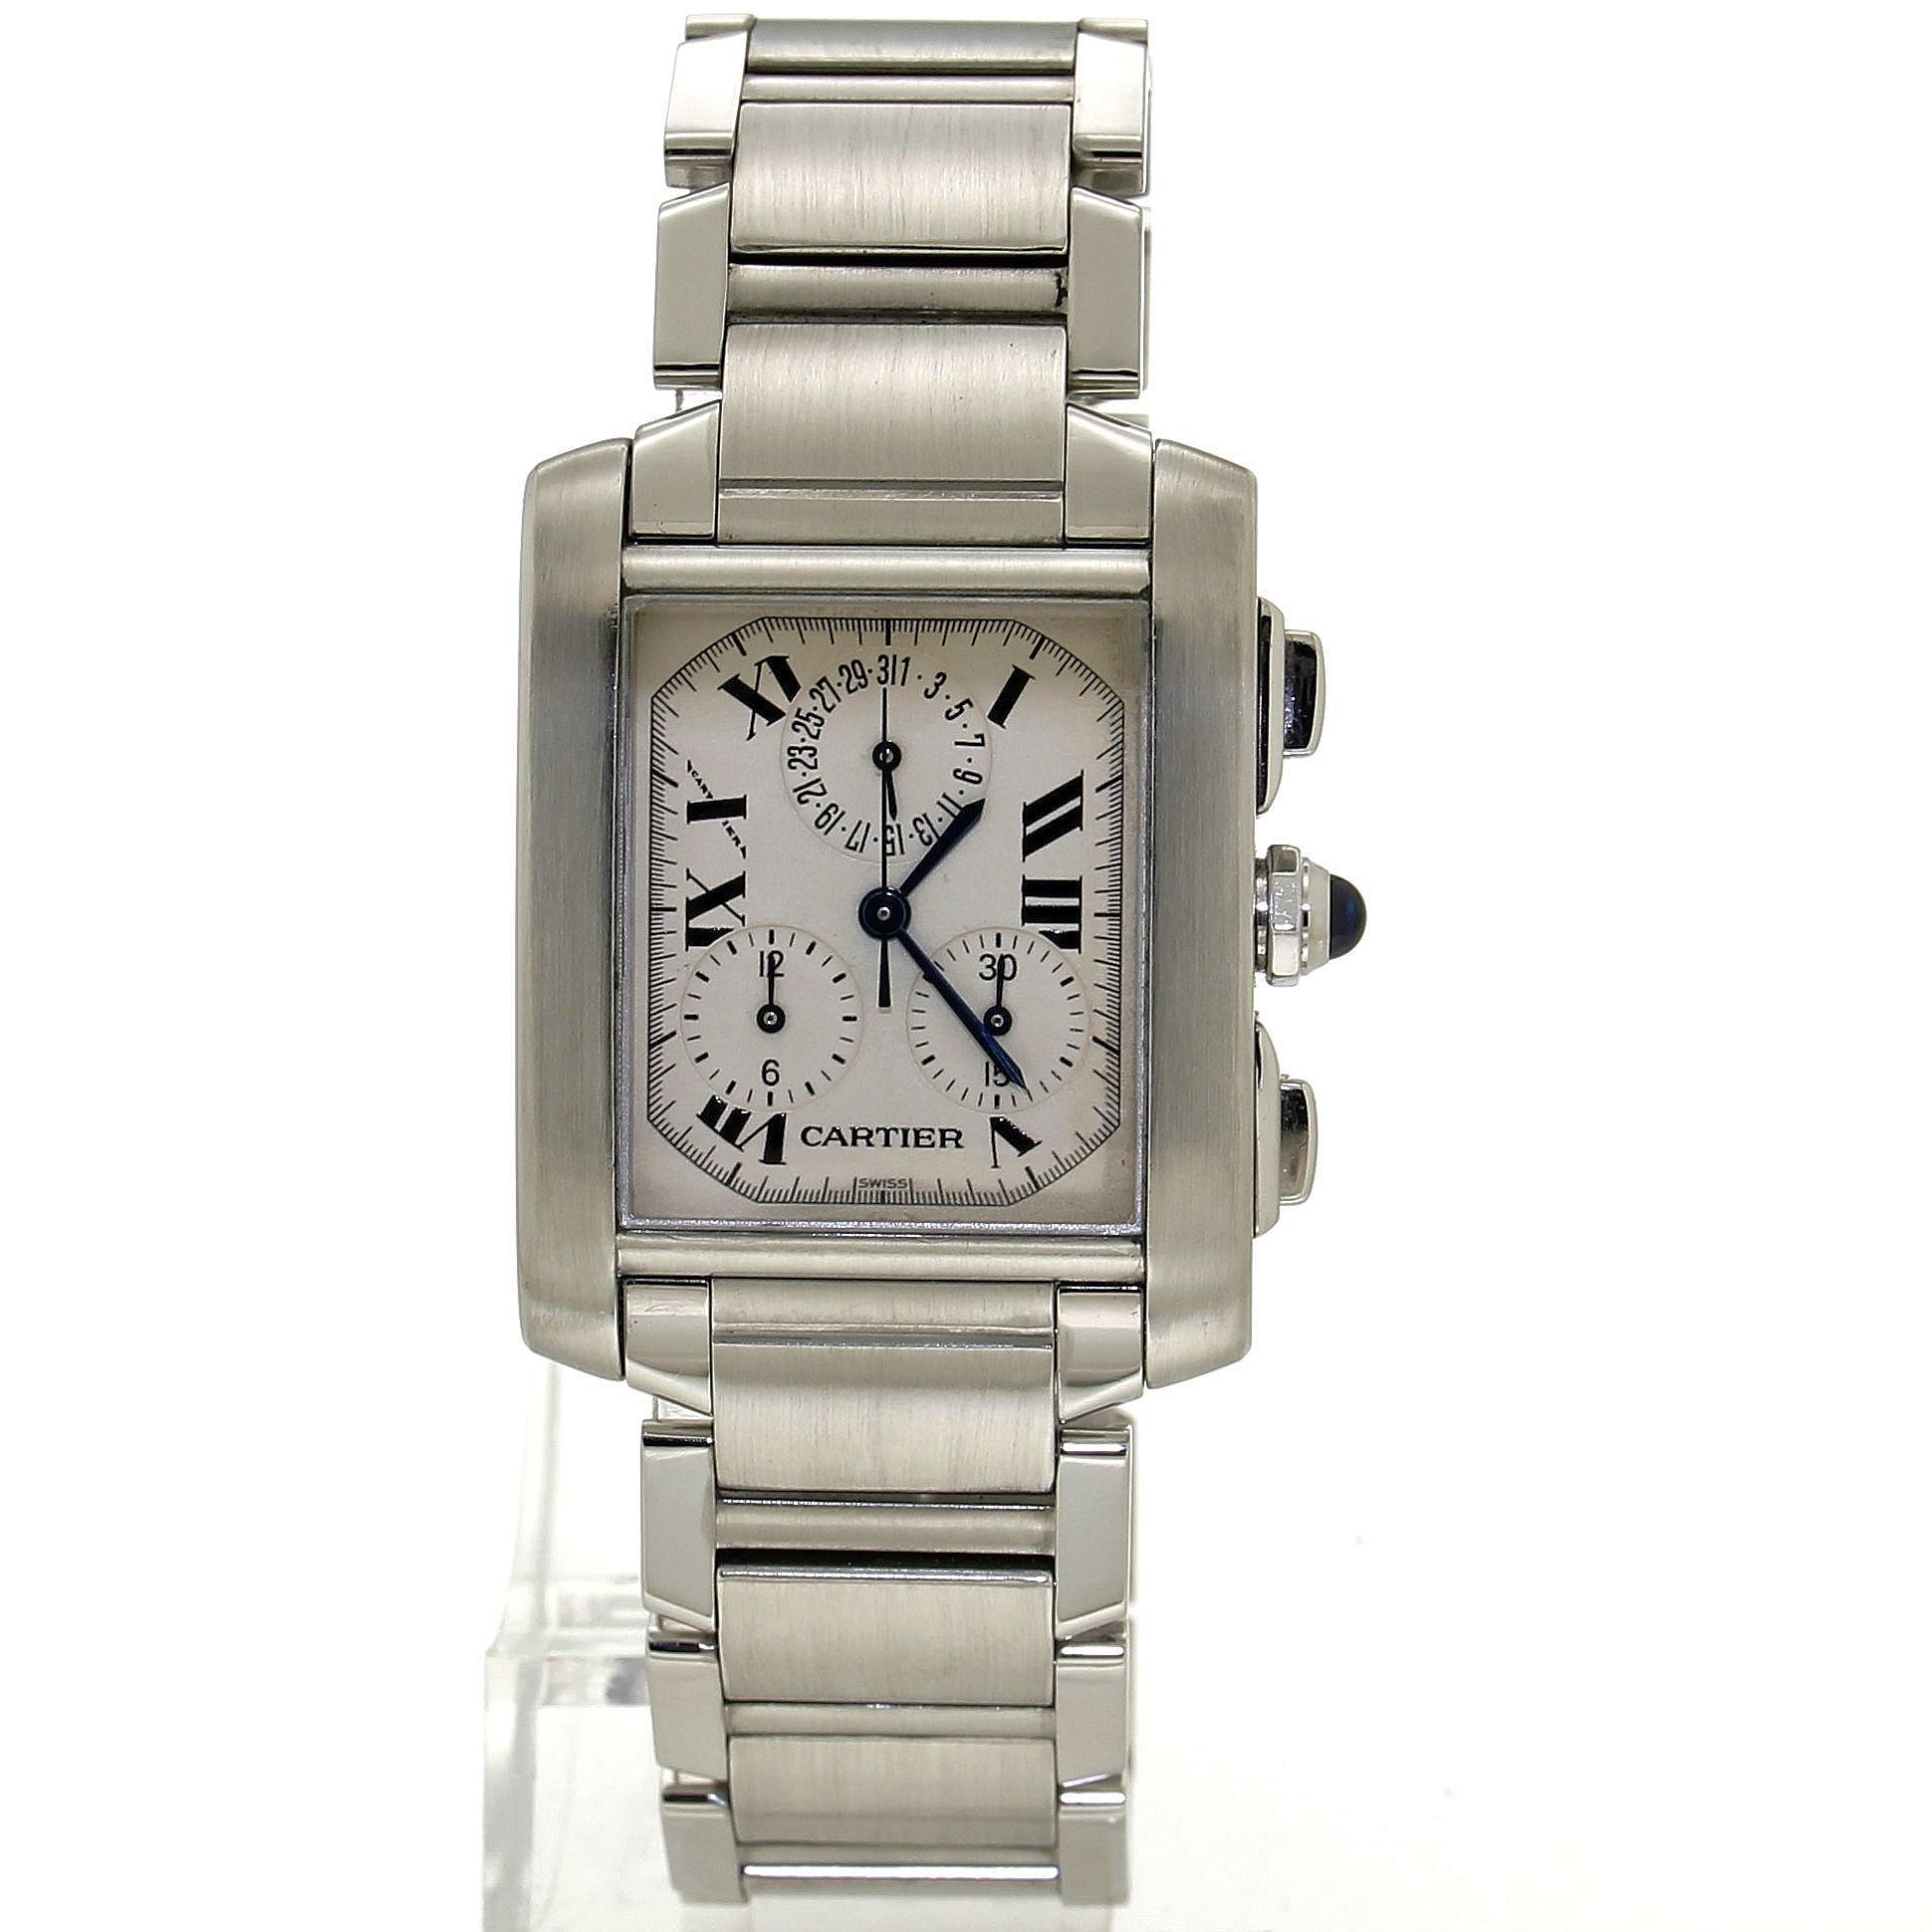 rolex shop tank watches online c outlet cartier cheap divan discount sale